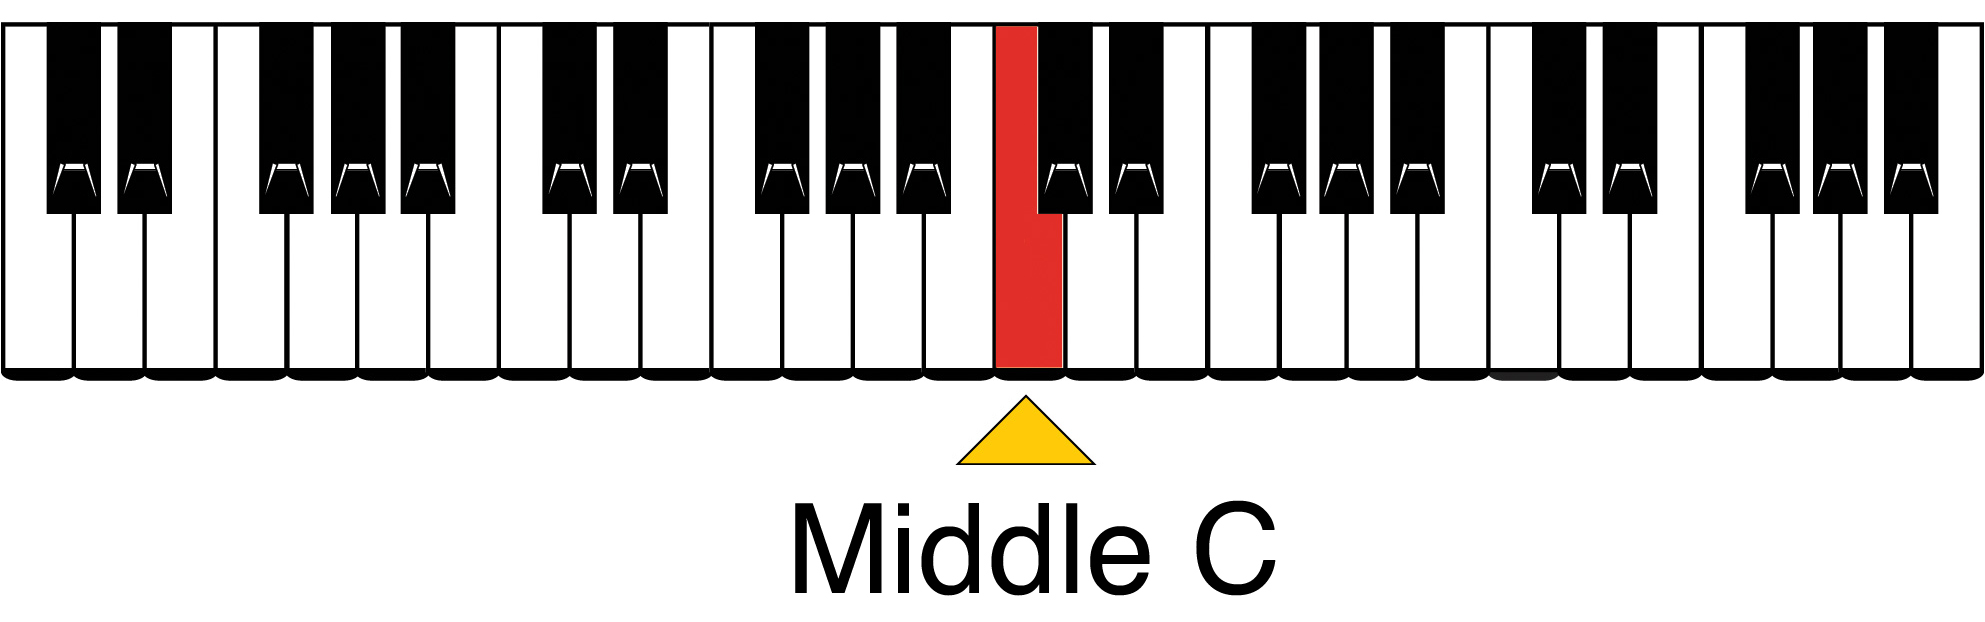 24 Easy Piano Chords in 30 Minutes with Leon Olguin: Music